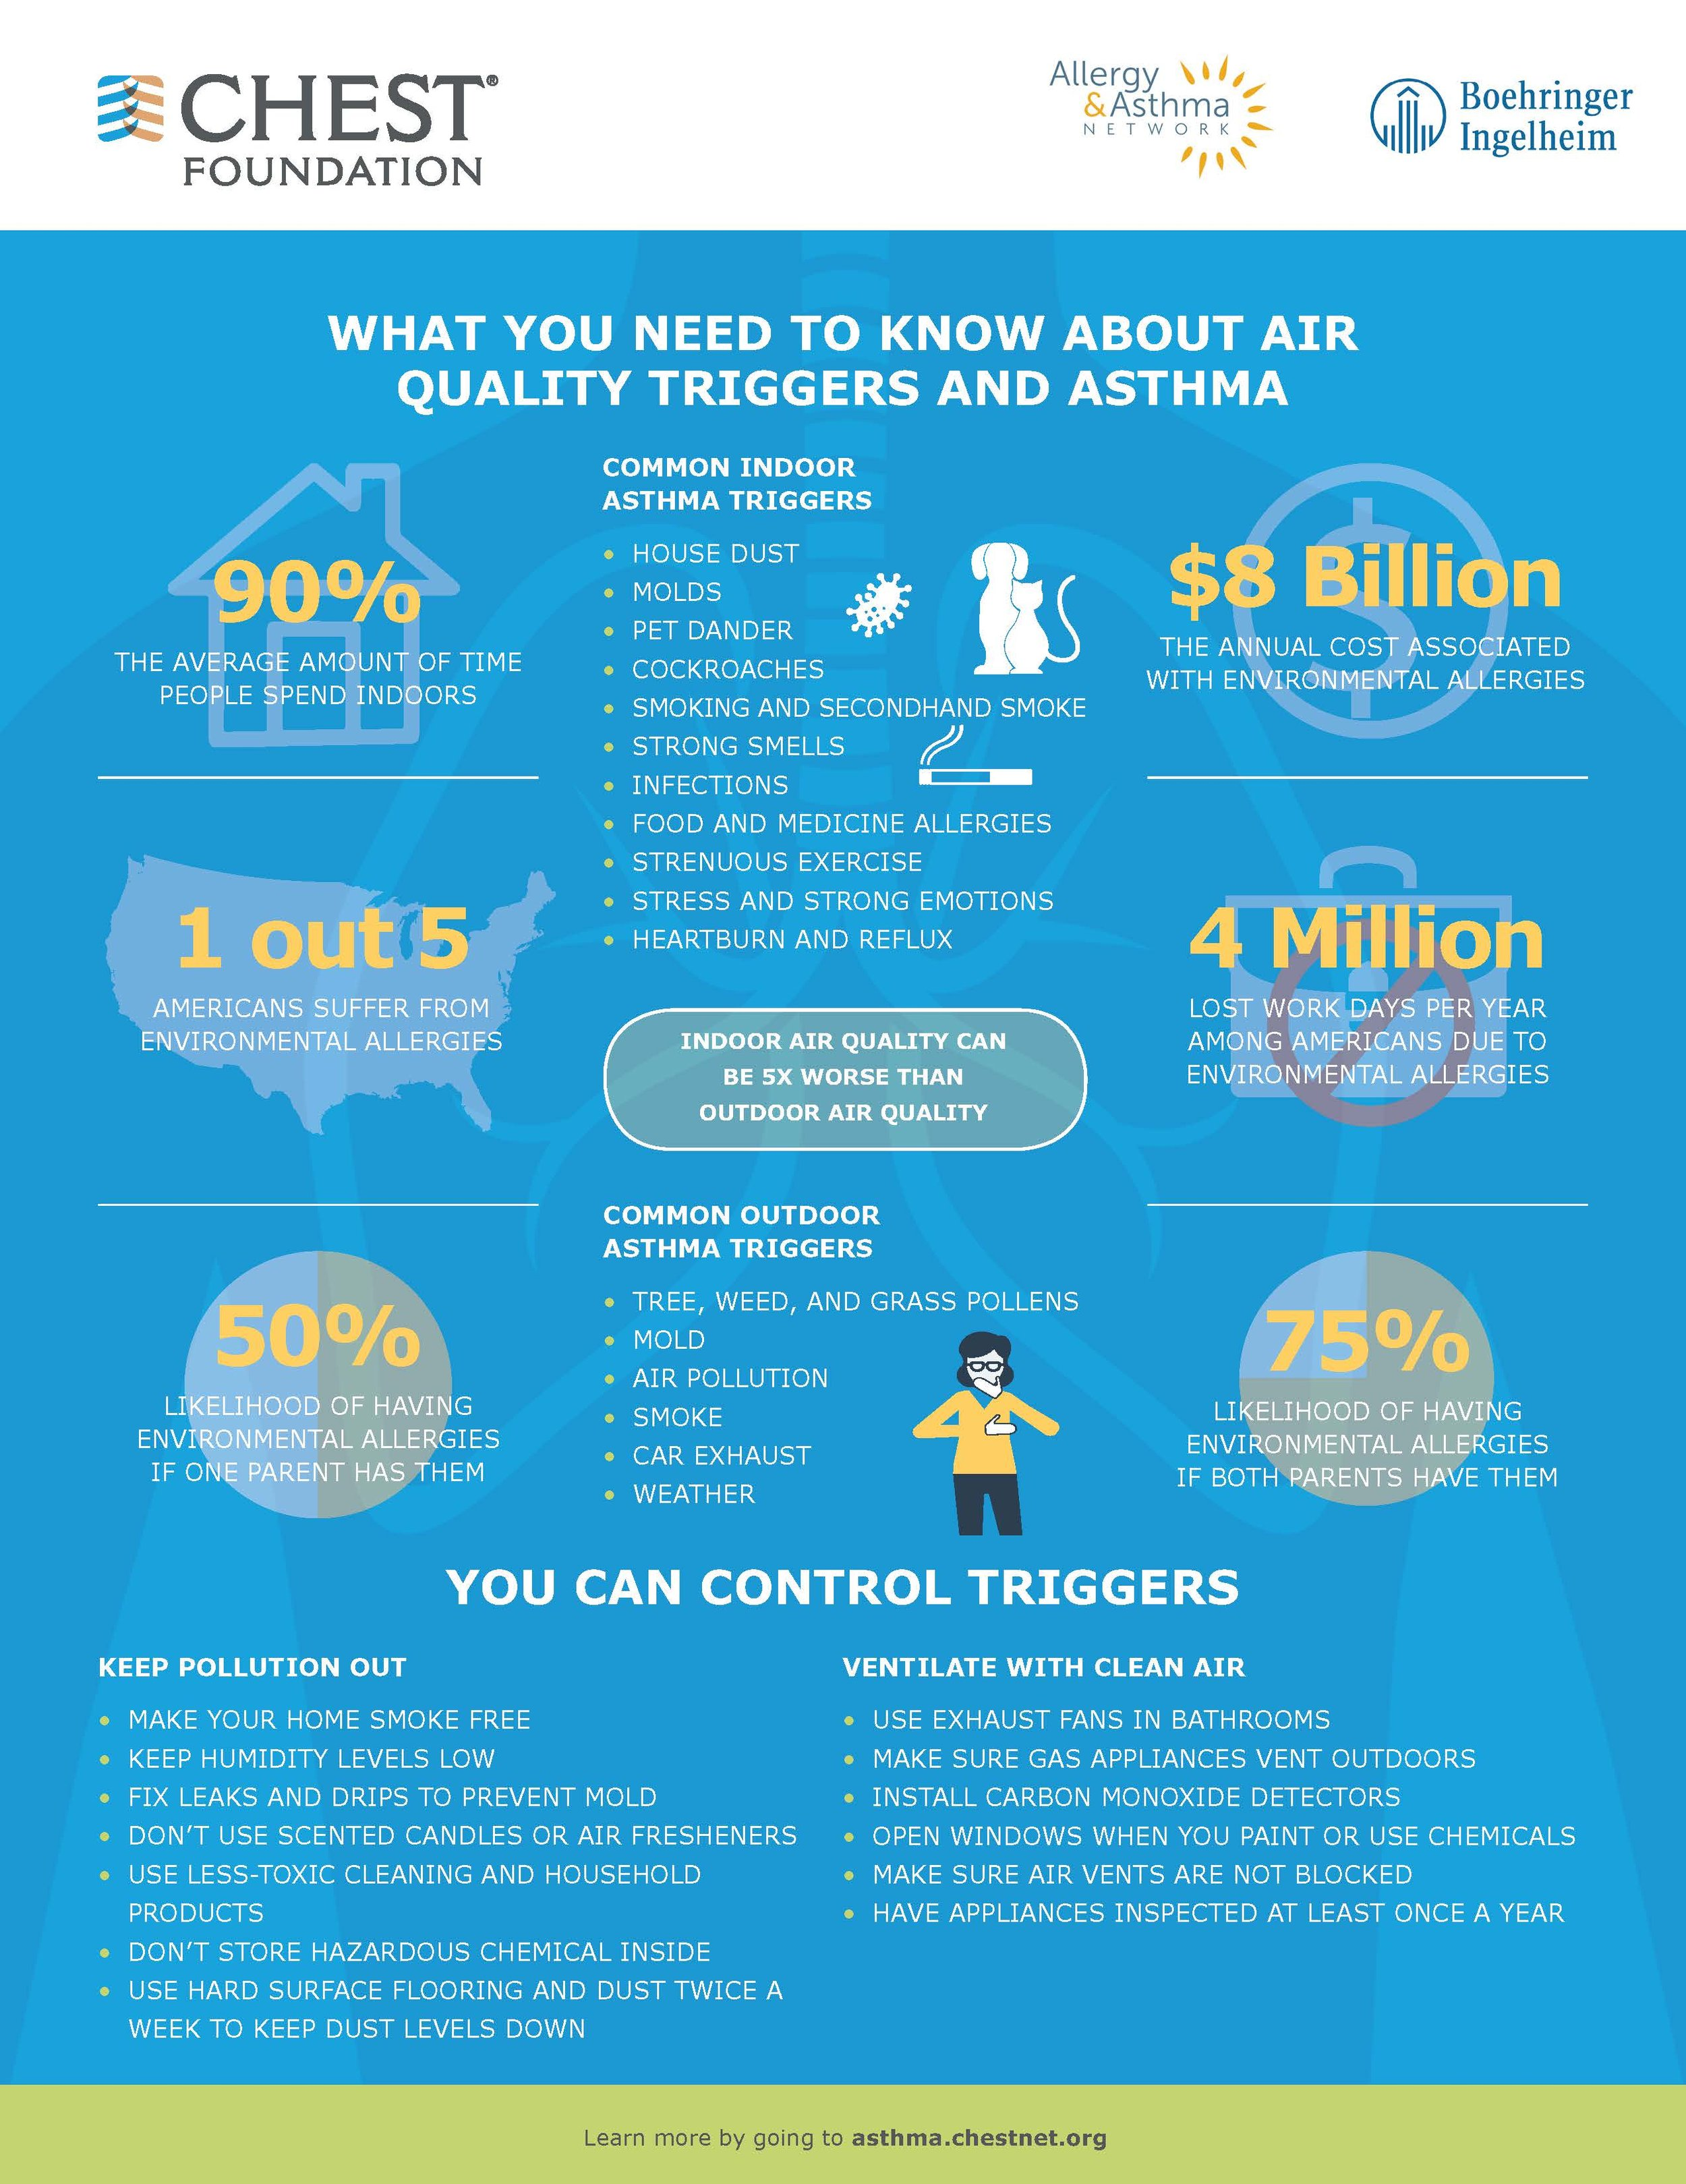 Indoor-Air-Quality-Infographic-FINAL-crop-1.jpg